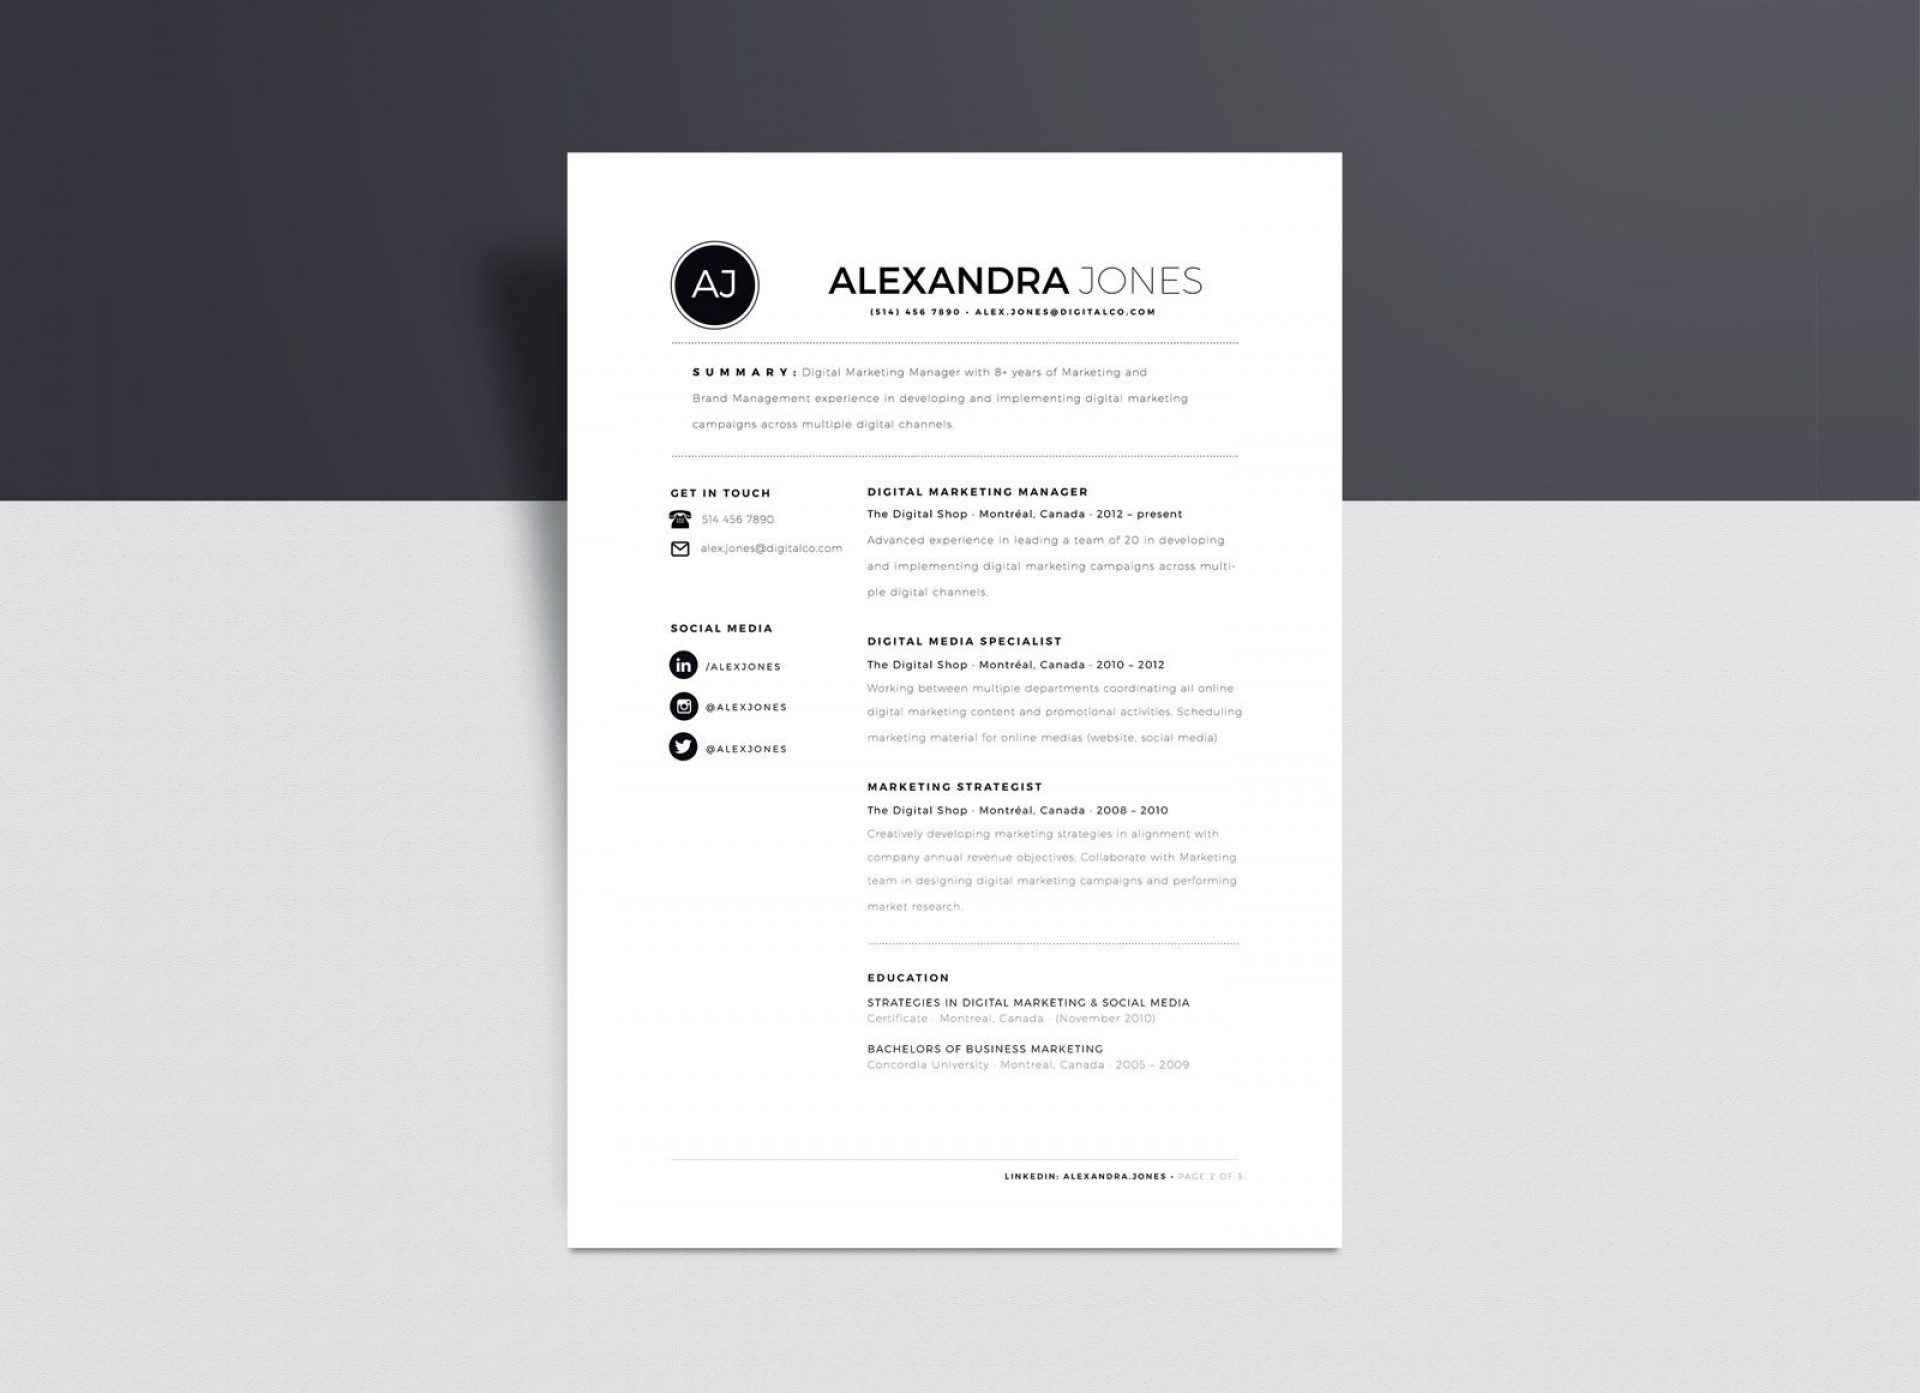 002 Frightening Resume Template Word Free High Definition  Download India 20201920